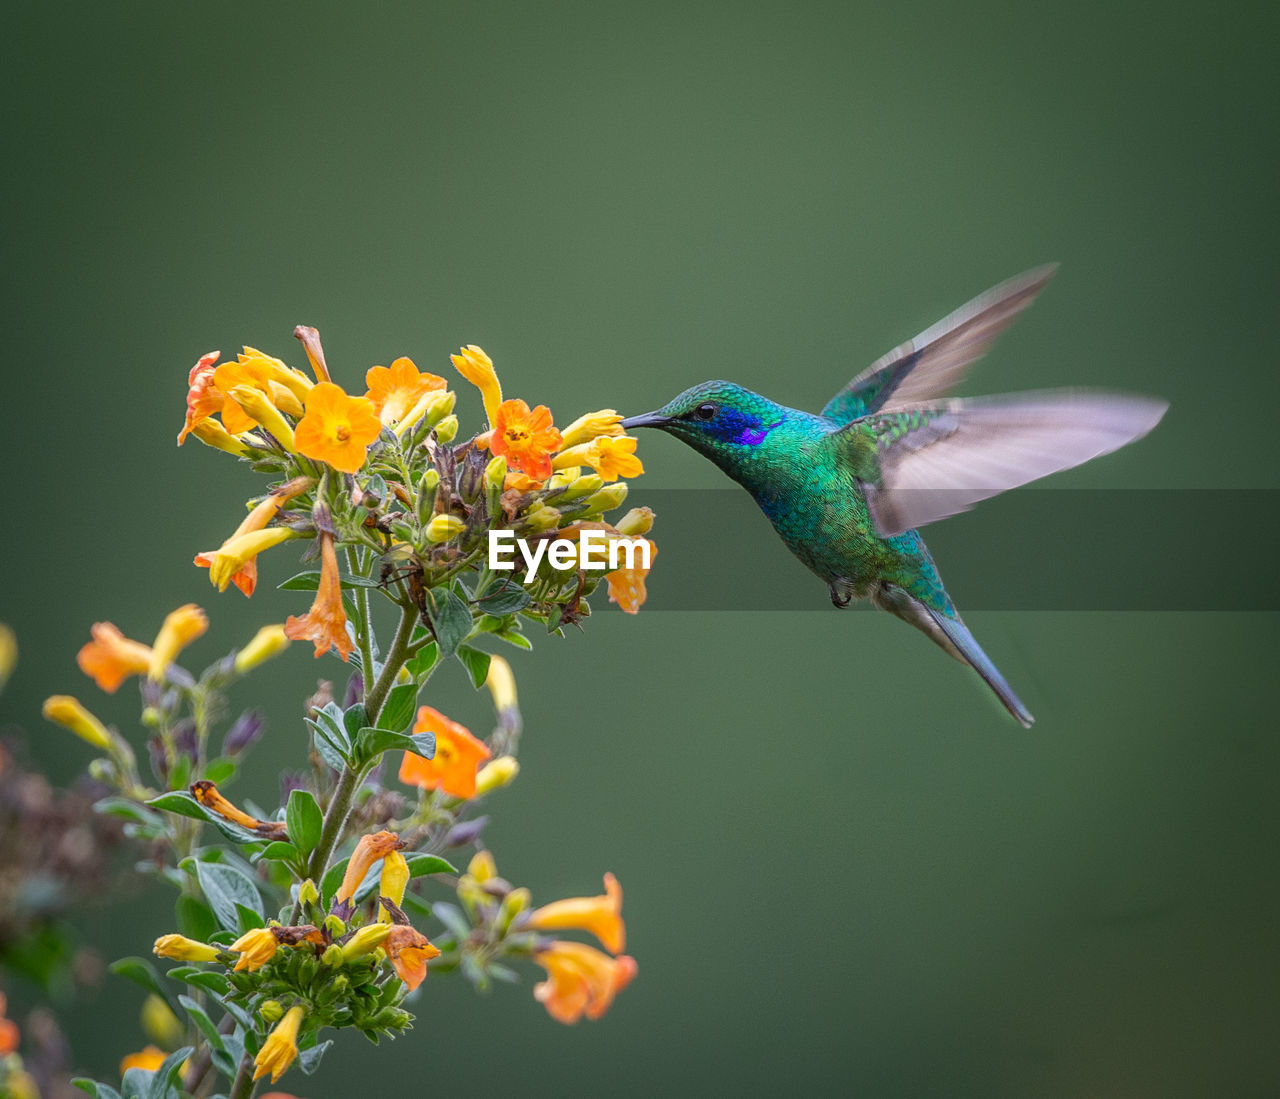 HIGH ANGLE VIEW OF BIRD FLYING IN A FLOWER